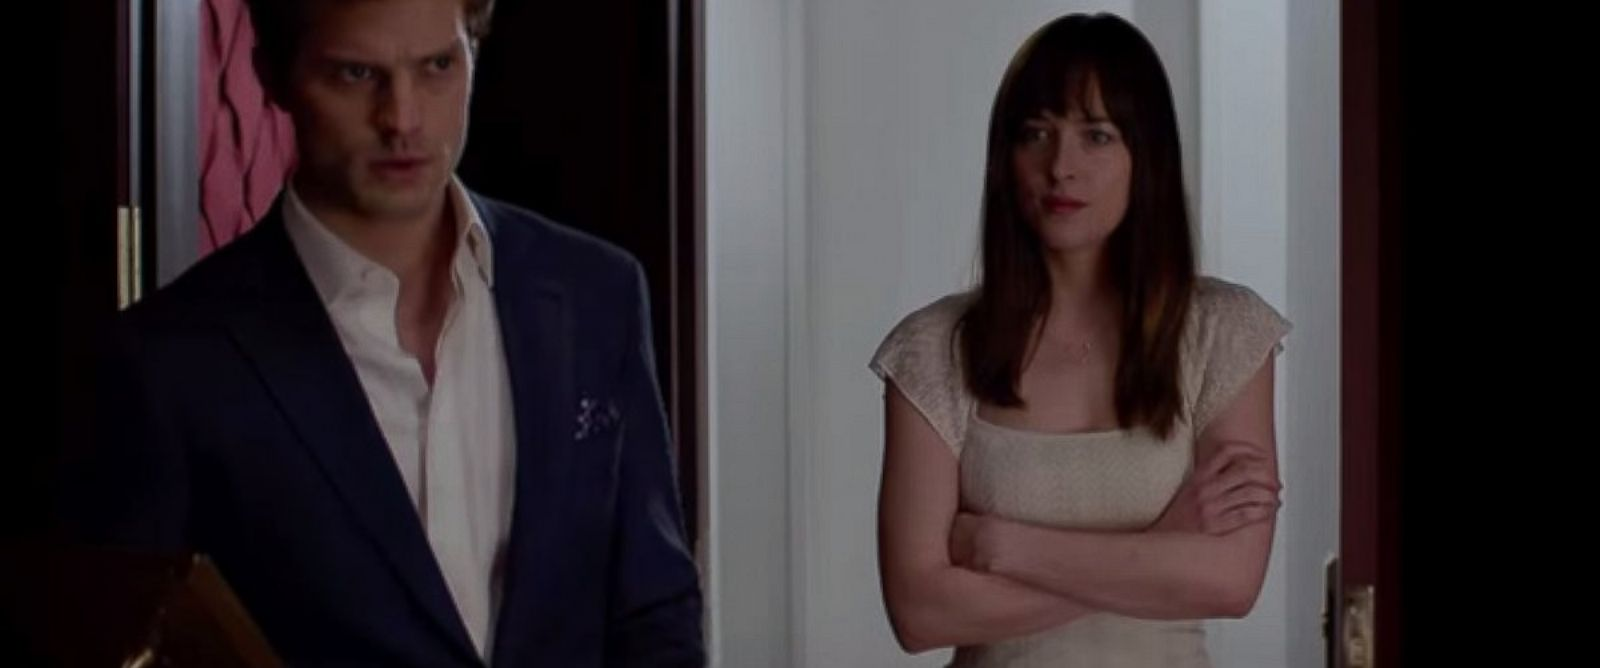 PHOTO: The official Fifty Shades of Grey trailer.